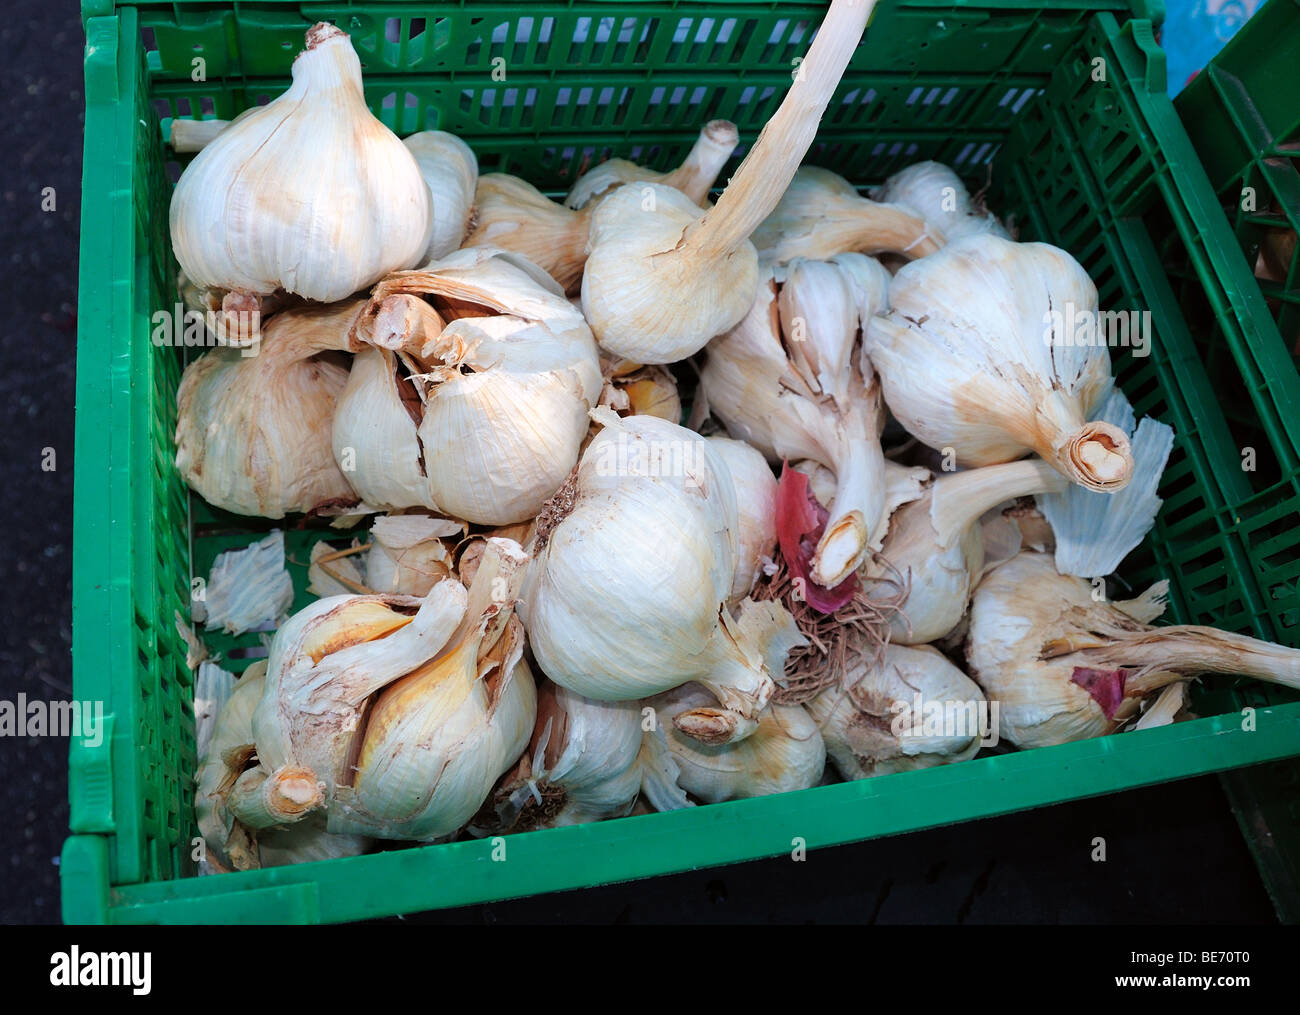 Organic elephant garlic Farmers market at St. Philip's Plaza, Tucson, Arizona, USA. - Stock Image